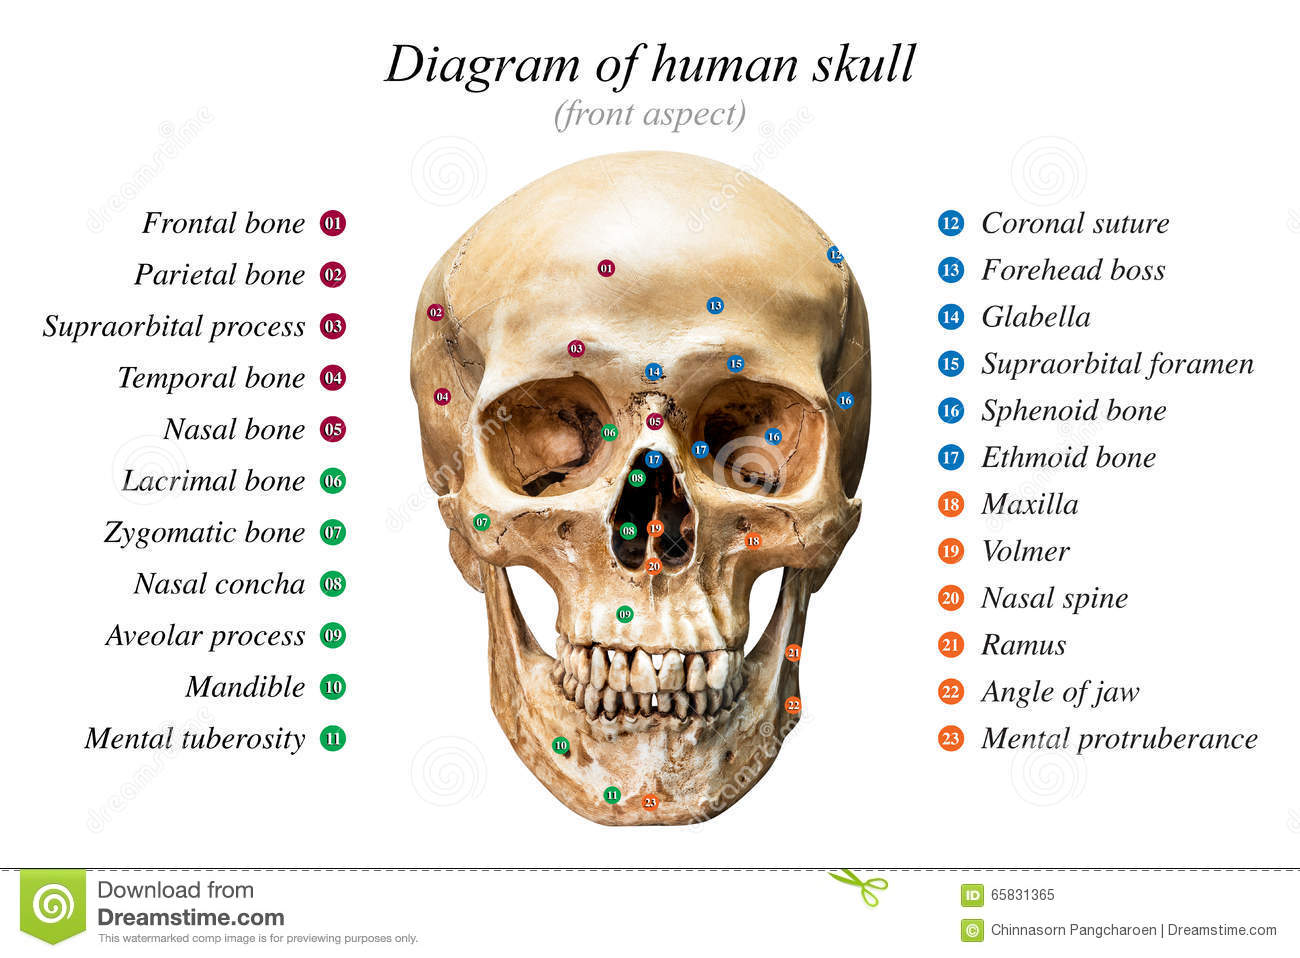 hight resolution of front aspect of human skull diagram on white background for basic medical education